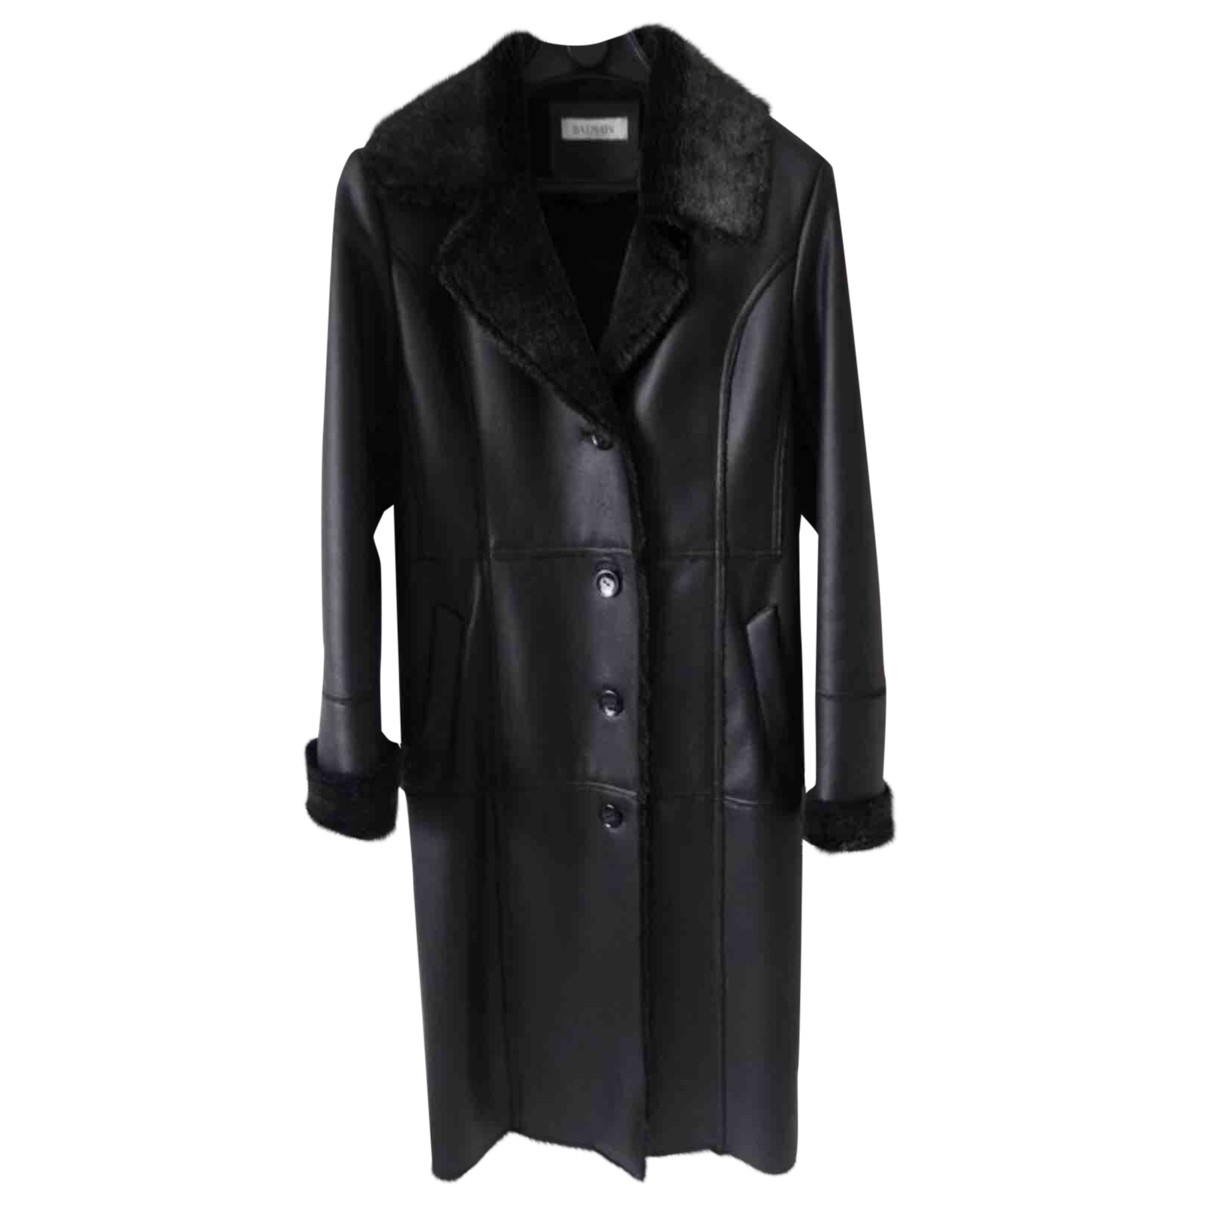 Balmain \N Black coat for Women 38 FR